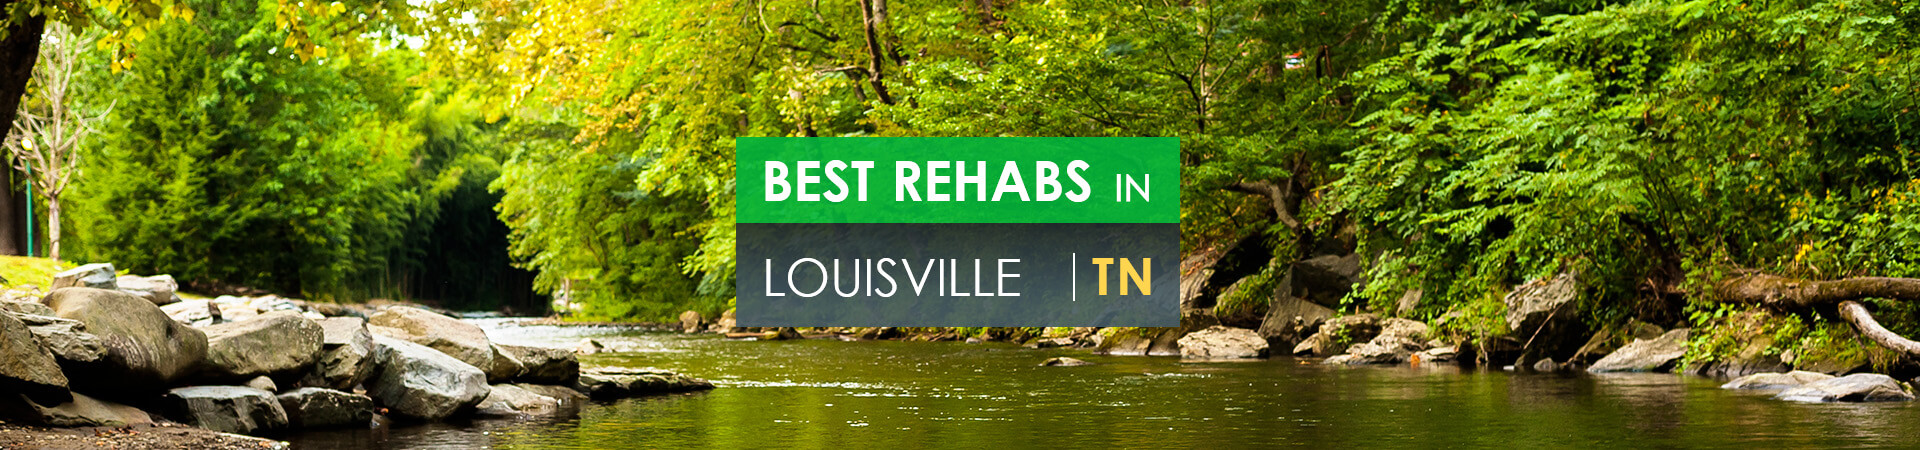 Best rehabs in Louisville, TN